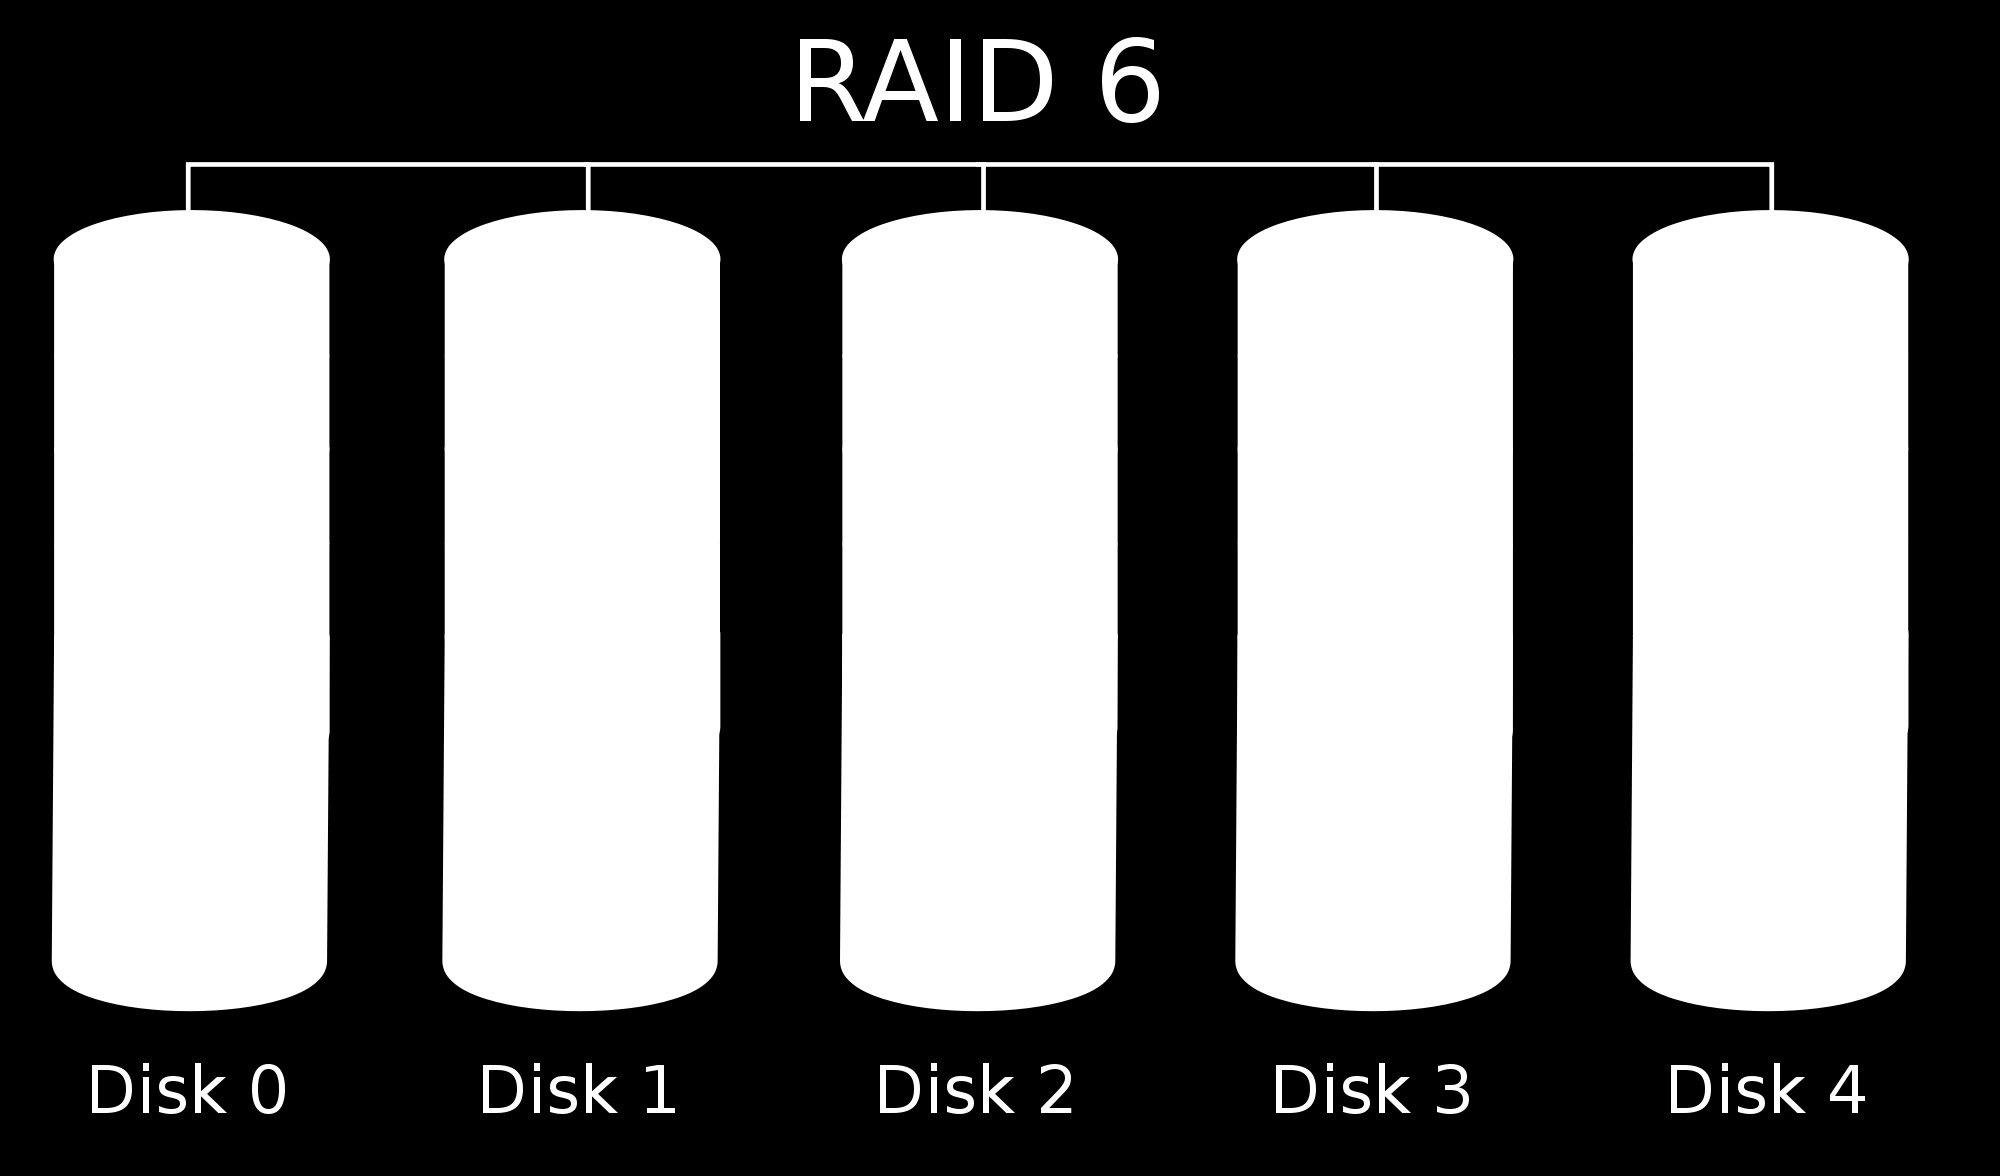 RAID 6 - Block-level striping with double distributed parity Data is stored on n + 2 hard disks, where two parity checksum